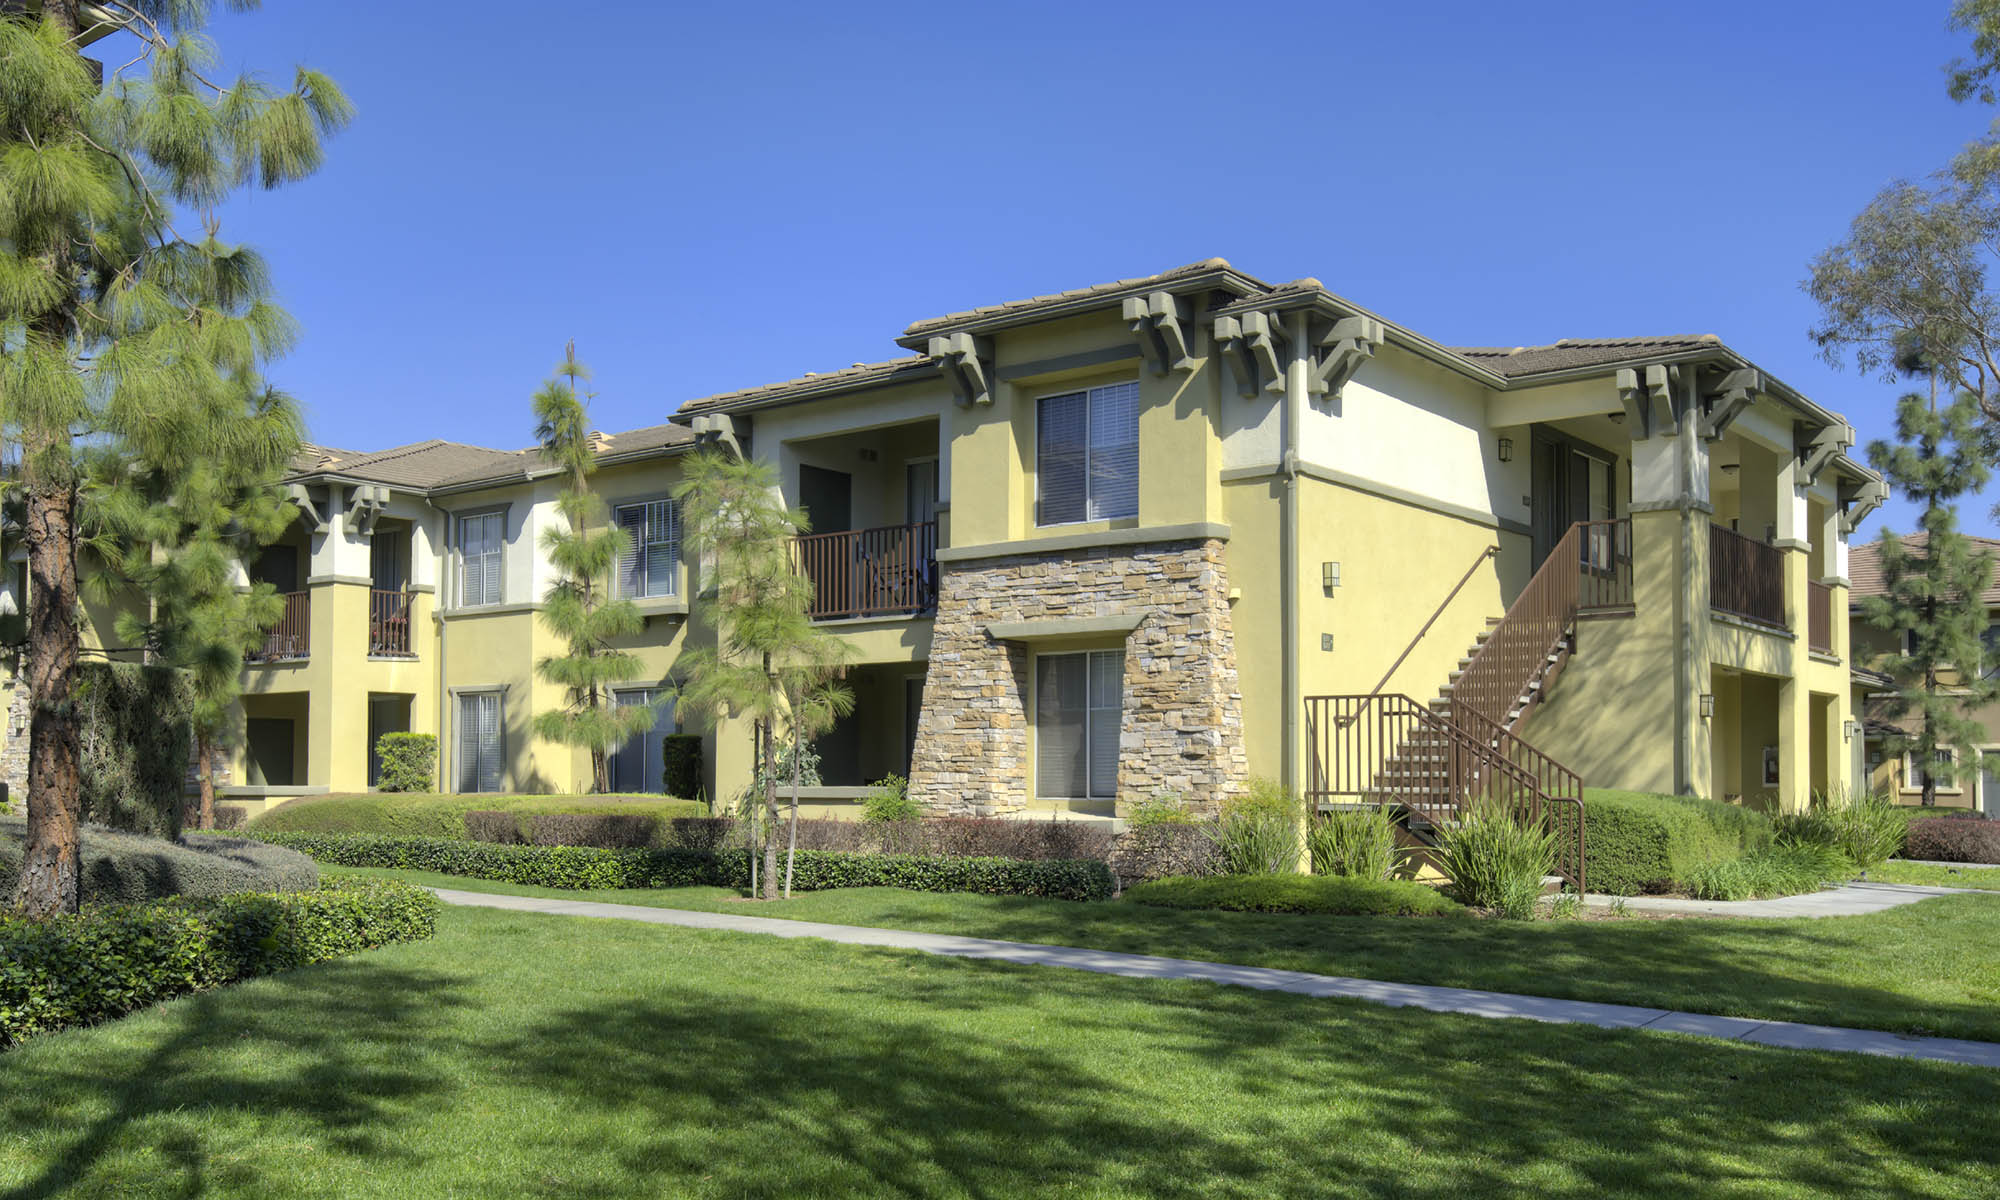 Apartments in Rancho Cucamonga, CA